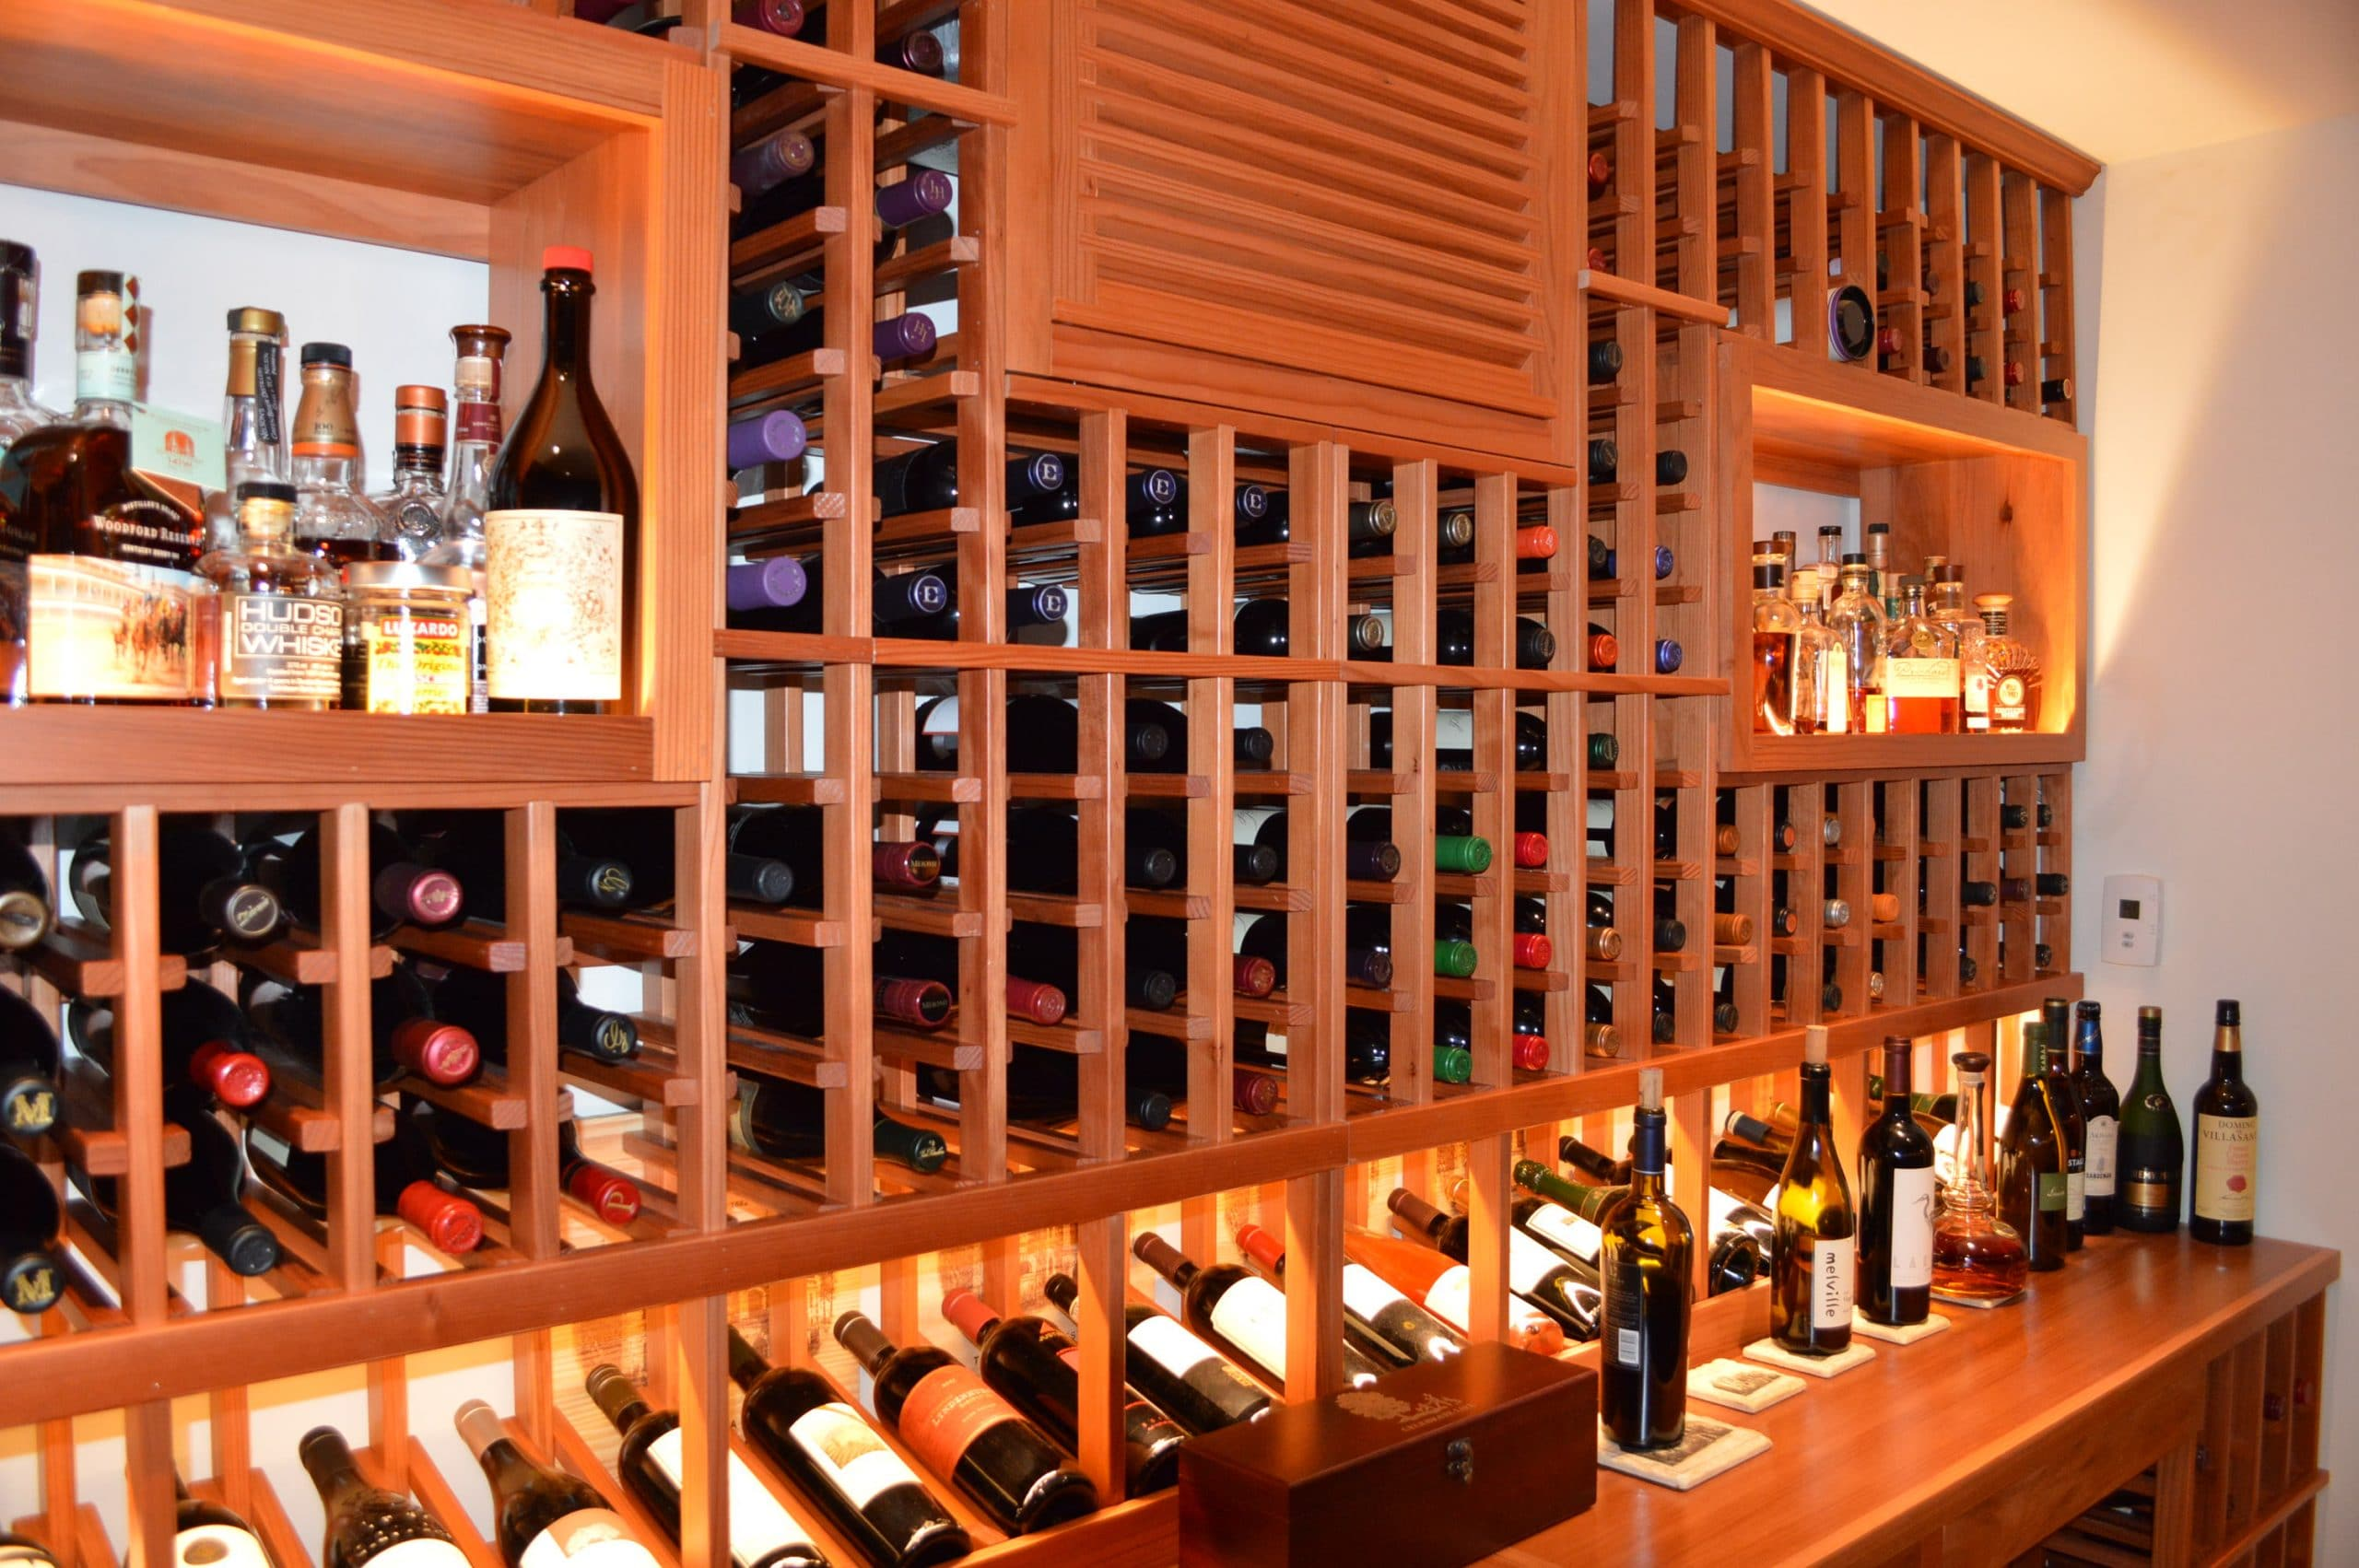 San francisco home custom wine cellar with redwood racking - Types of beautiful wine racks for your home ...